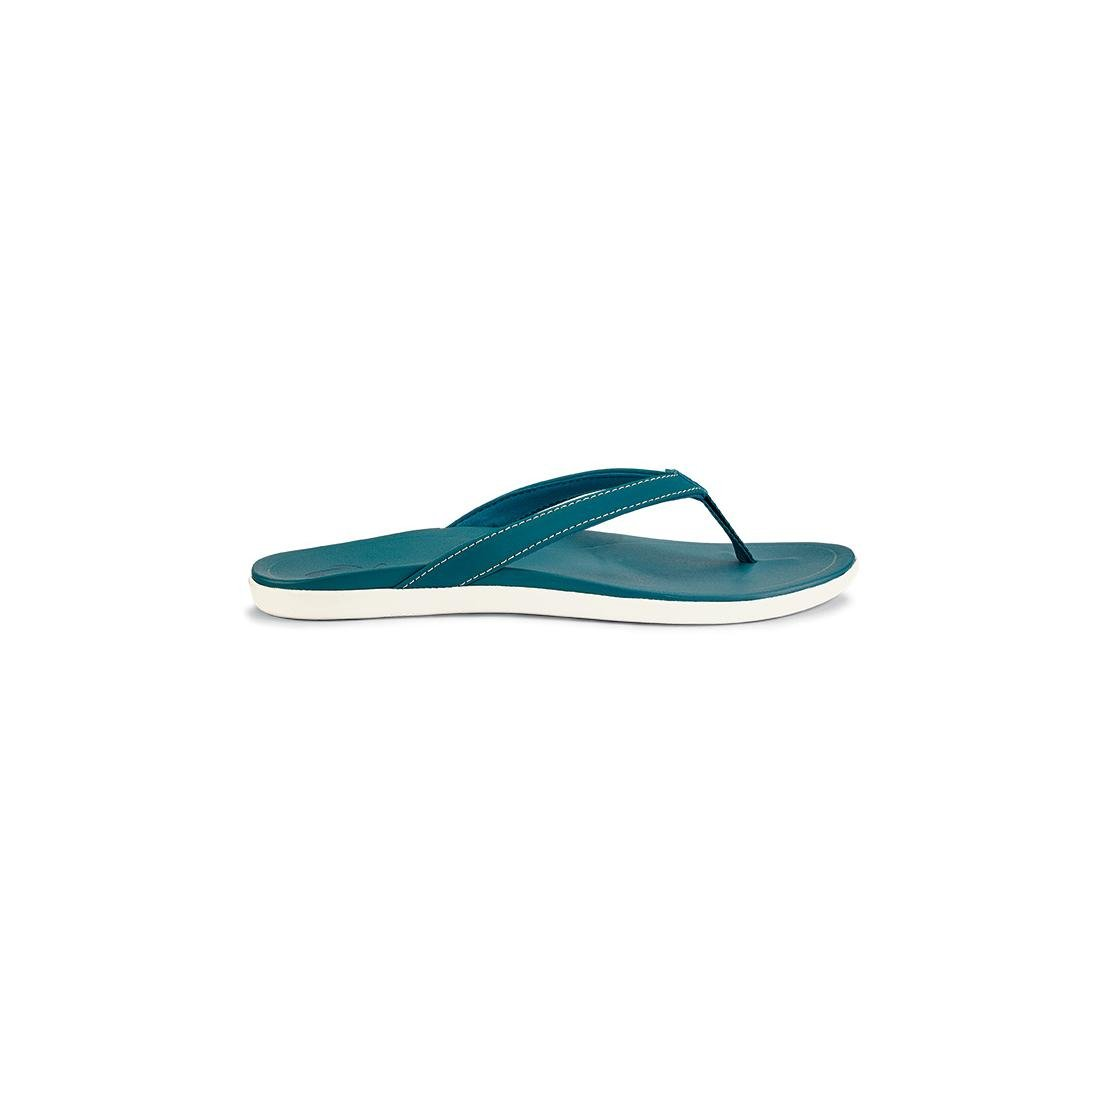 Teal Teal OluKai Ho'opio Leather Sandal - Women's